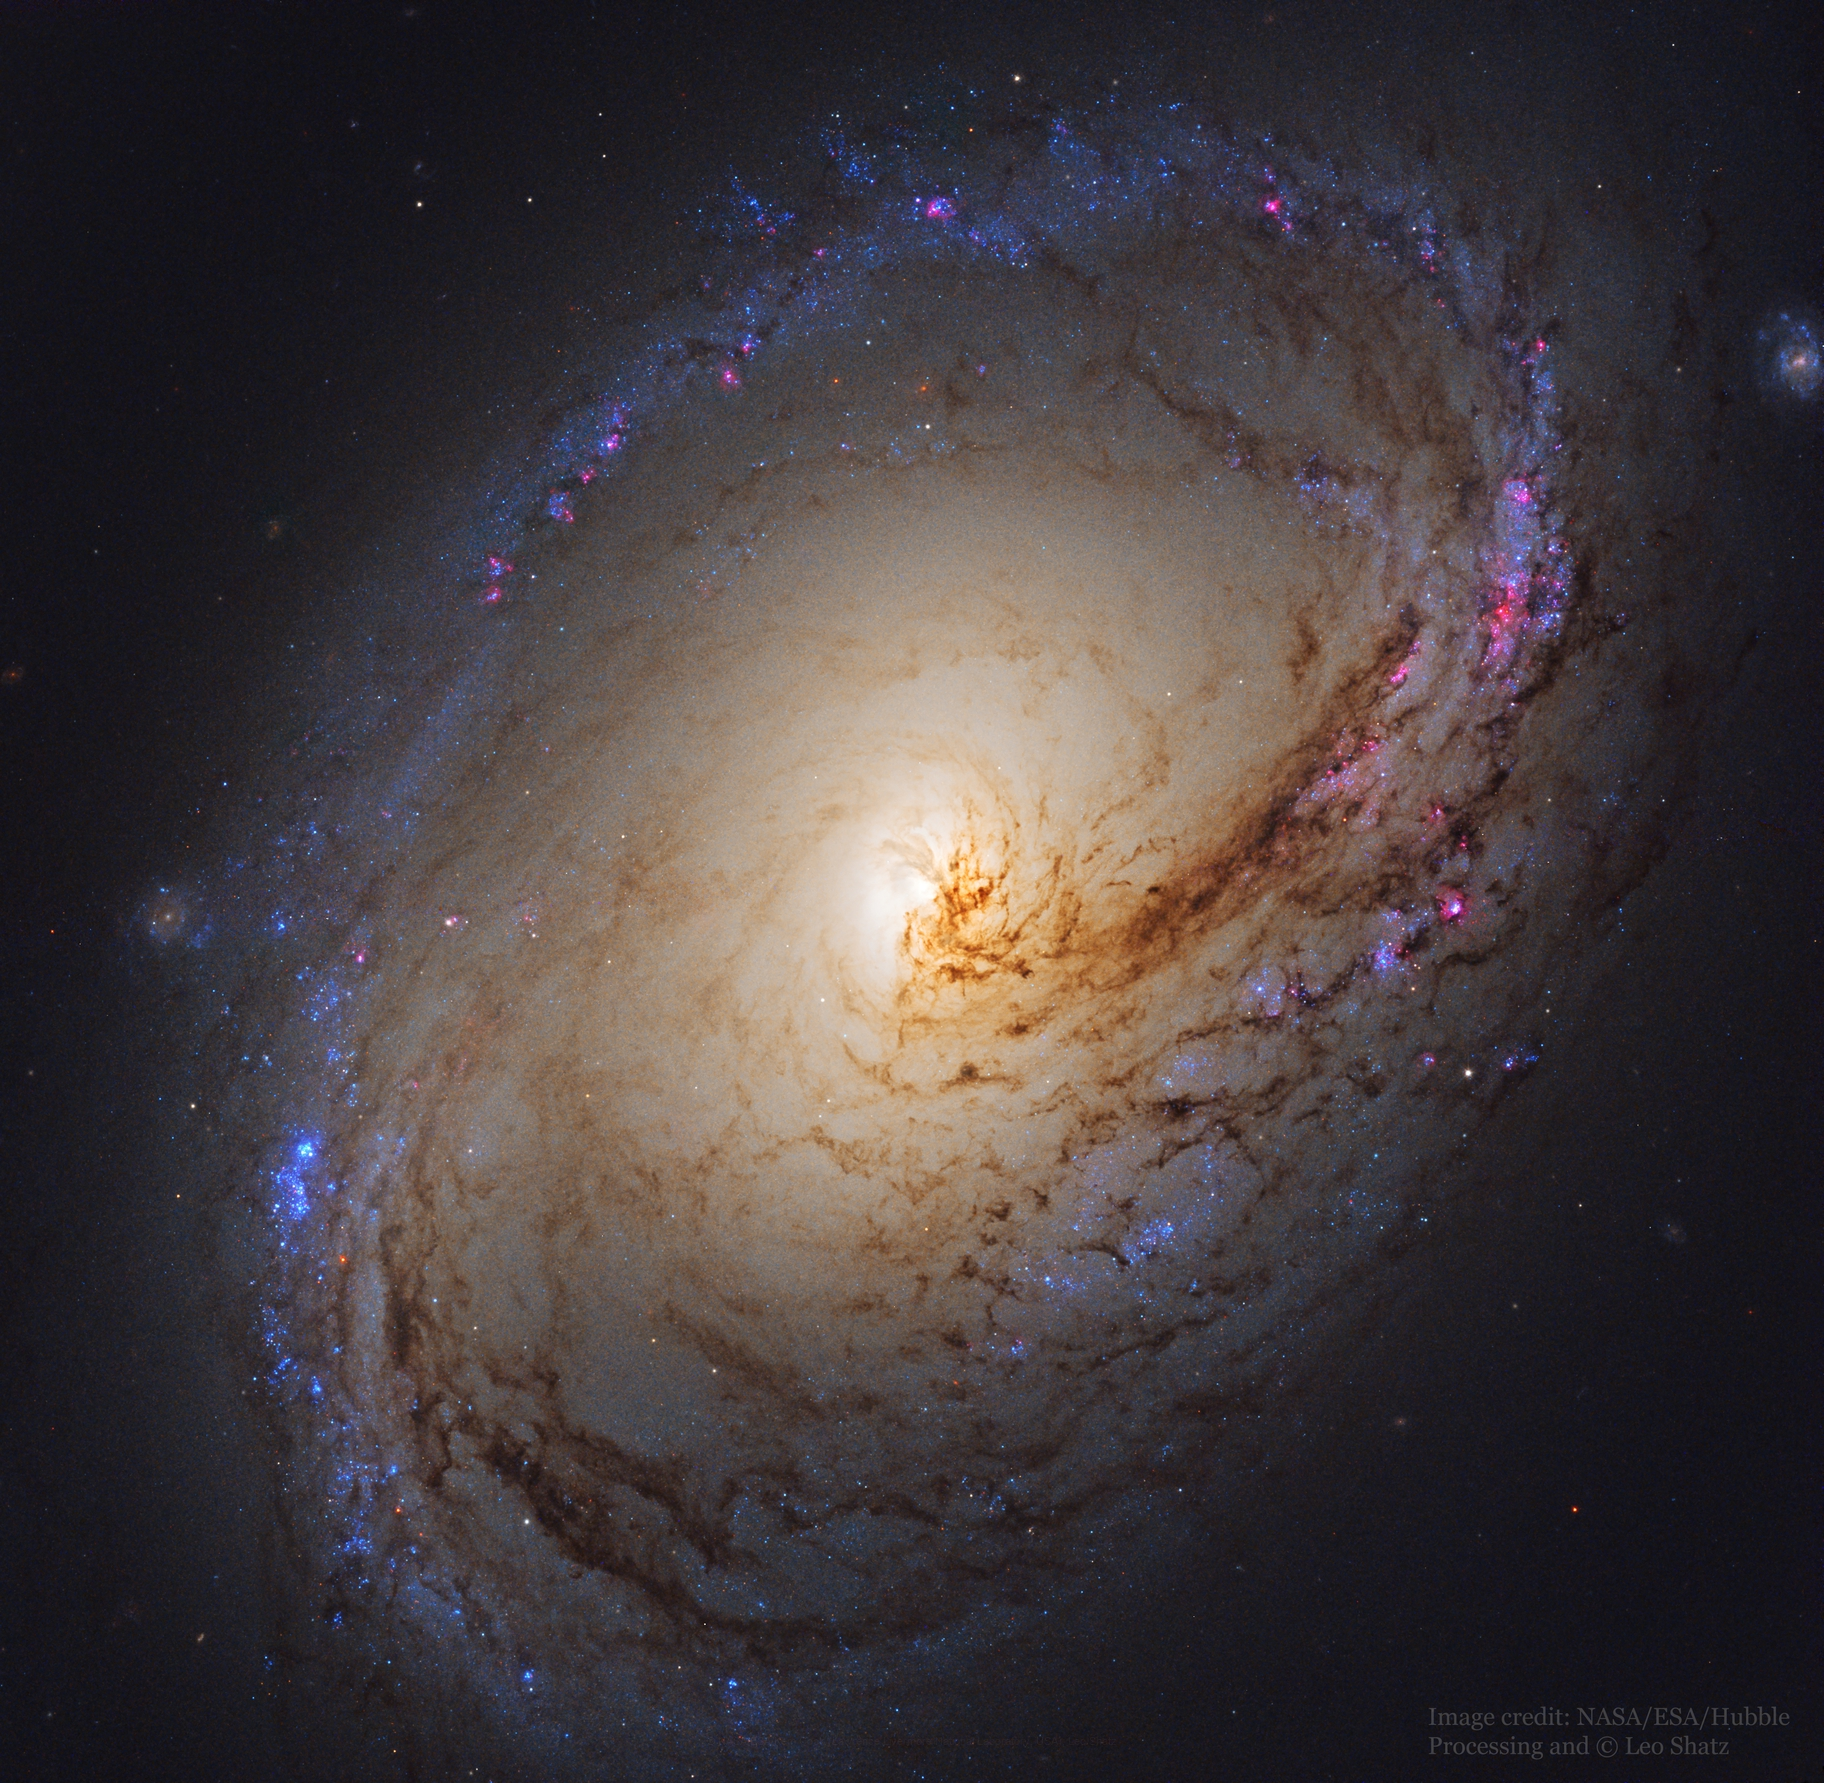 APOD: 2019 June 12 - Spiral Galaxy M96 from Hubble